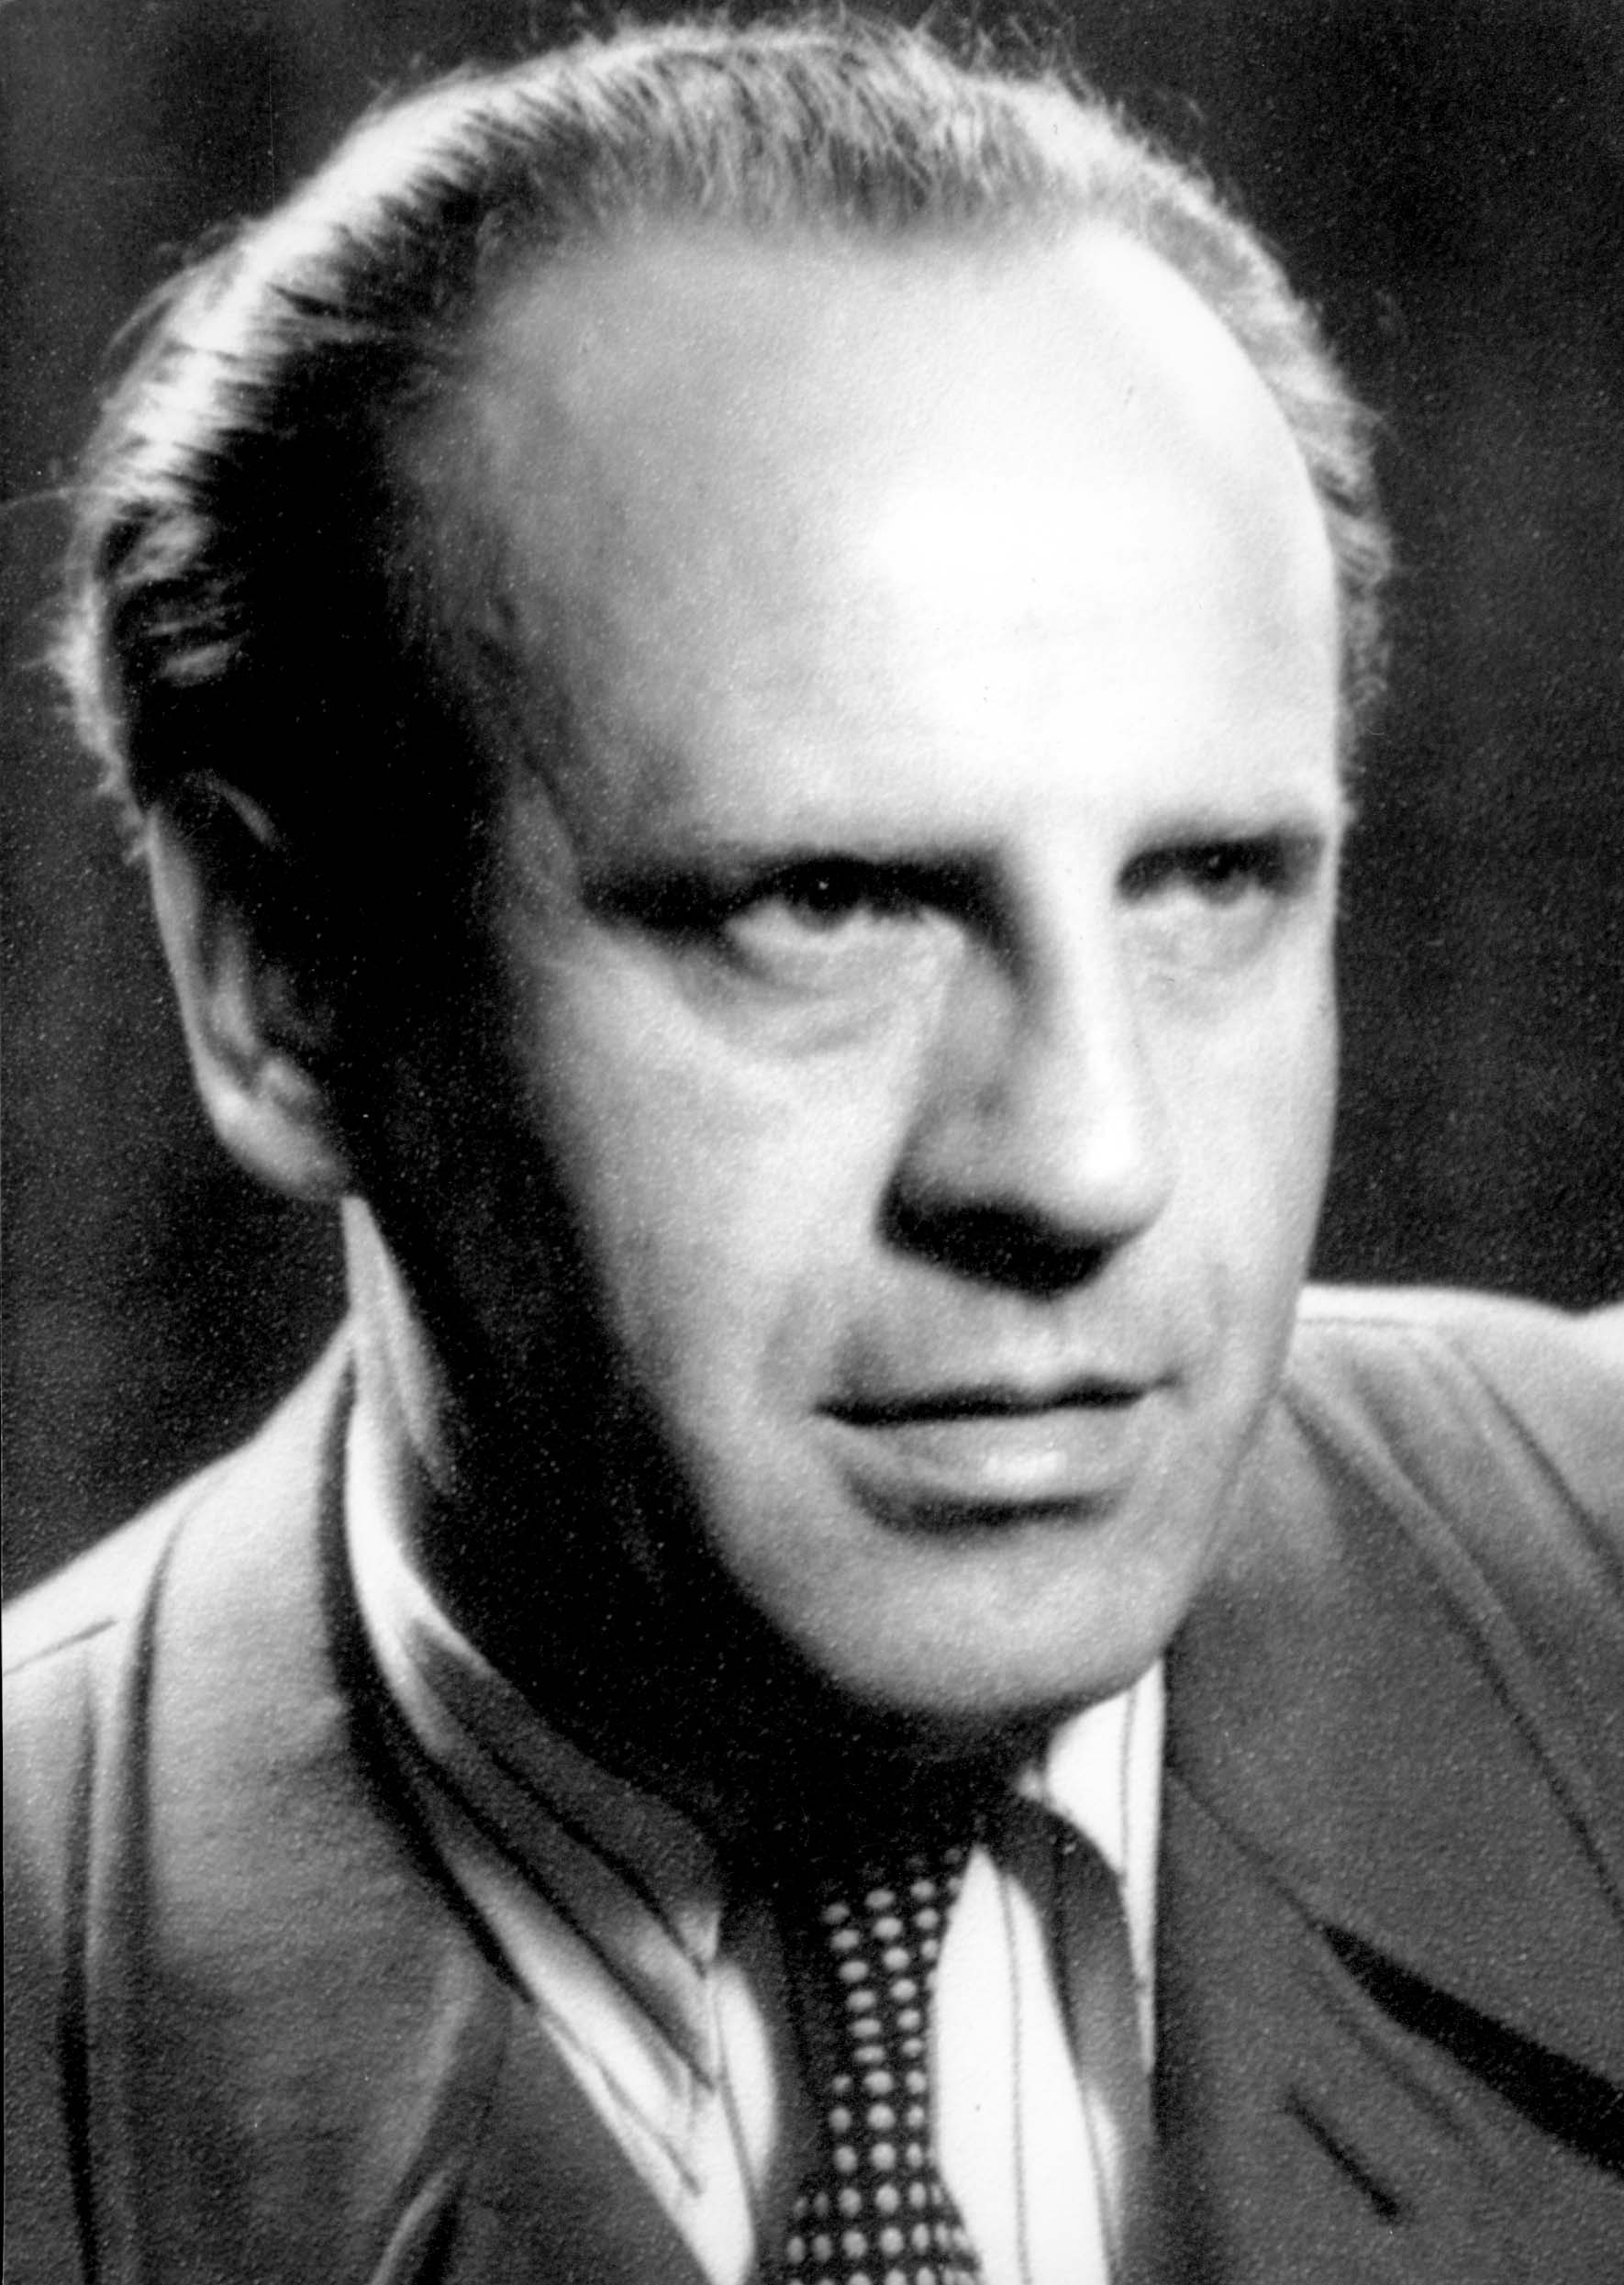 oscar schindler Oskar schindler was born in 1908 in the industrial city of zwittau, moravia, then a german province of the austro-hungarian empire and now part of the czech republic the region where oskar grew up and attended a german-language school was also known as the sudetenland.